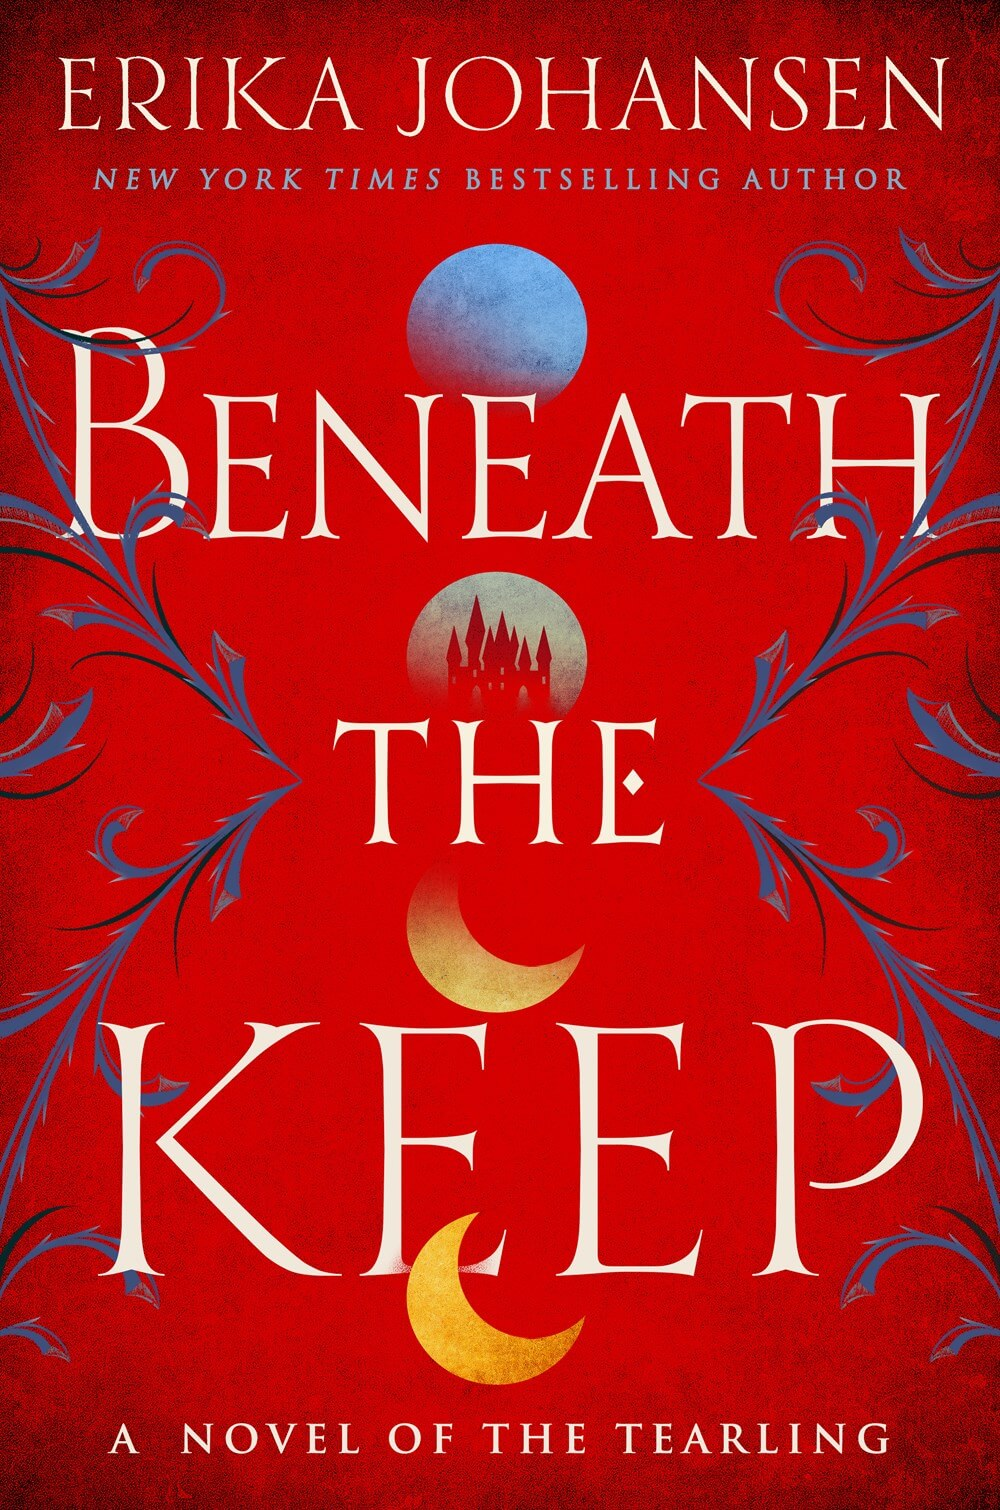 Beneath the Keep: A Novel of the Tearling